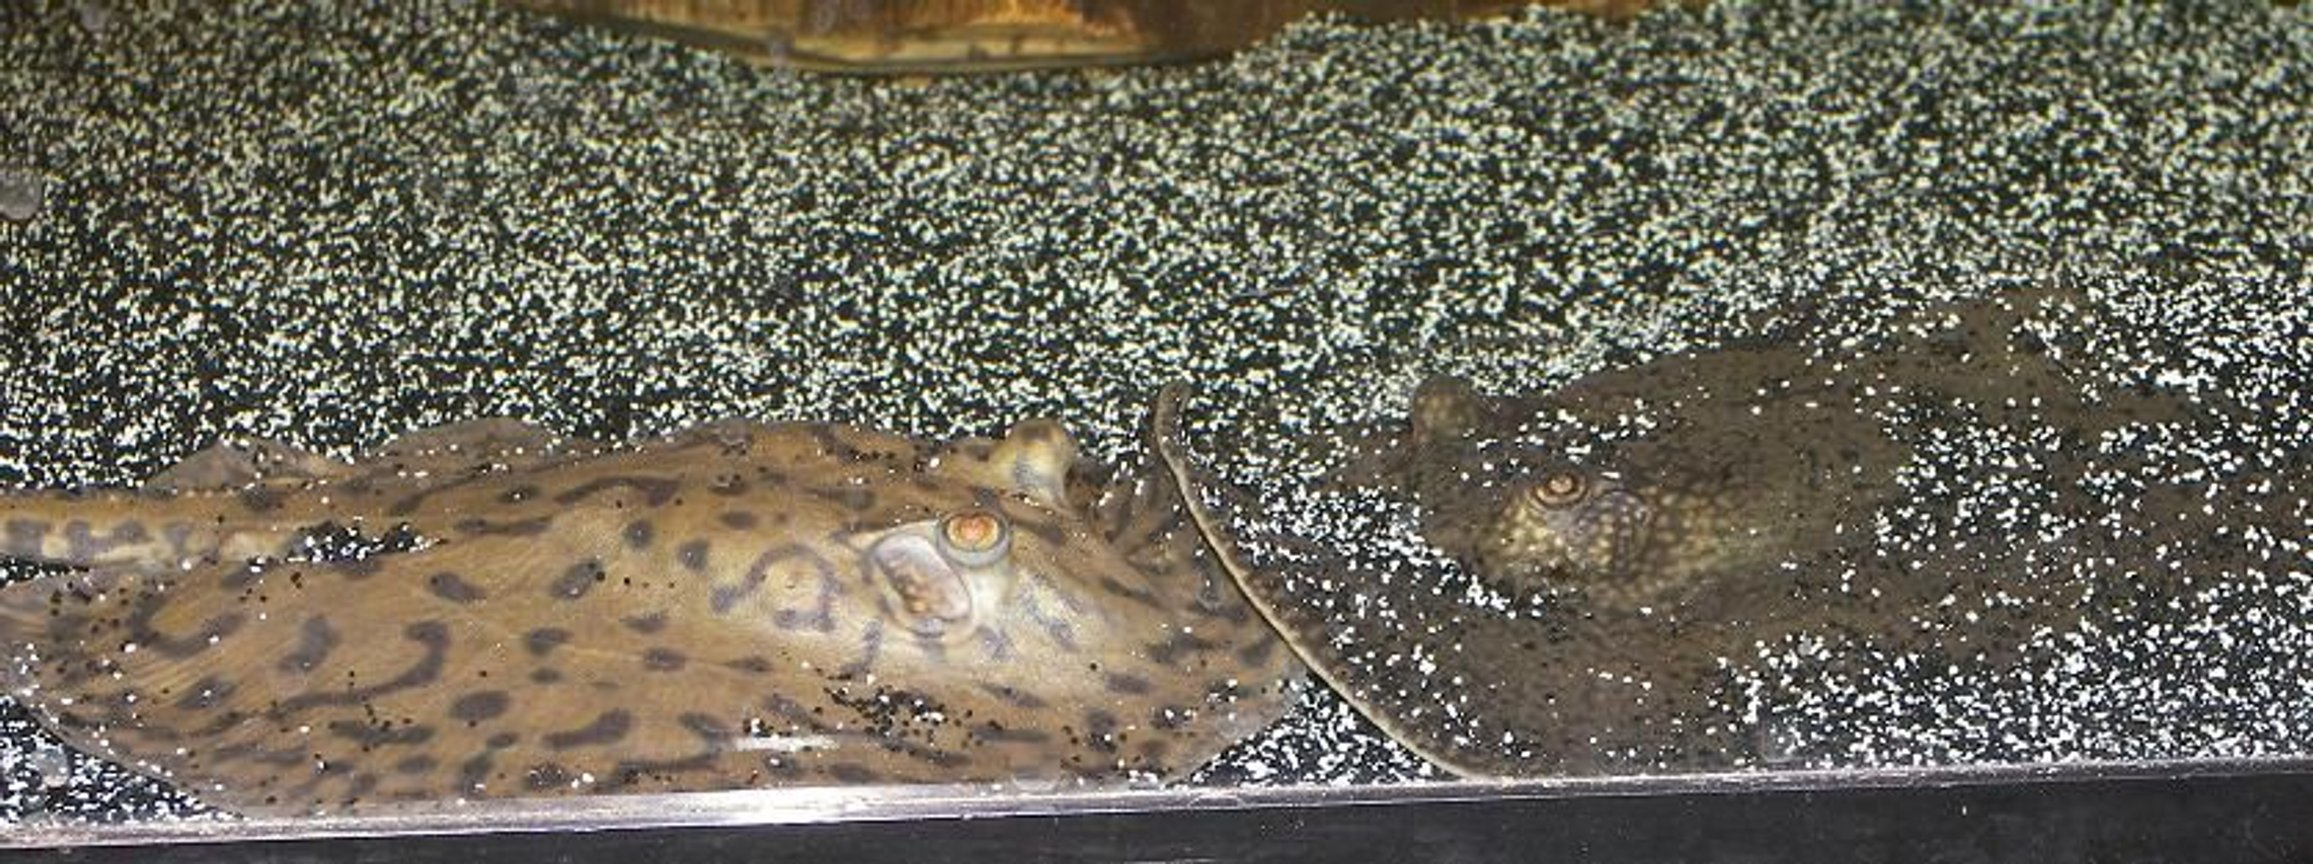 saltwater fish - urobatis halleri - round stingray stocking in 120 gallons tank - Stingrays Kissing. THIS IS FRESHWATER NOT SALTWATER, CHANGE IT BACK A-HOLE's